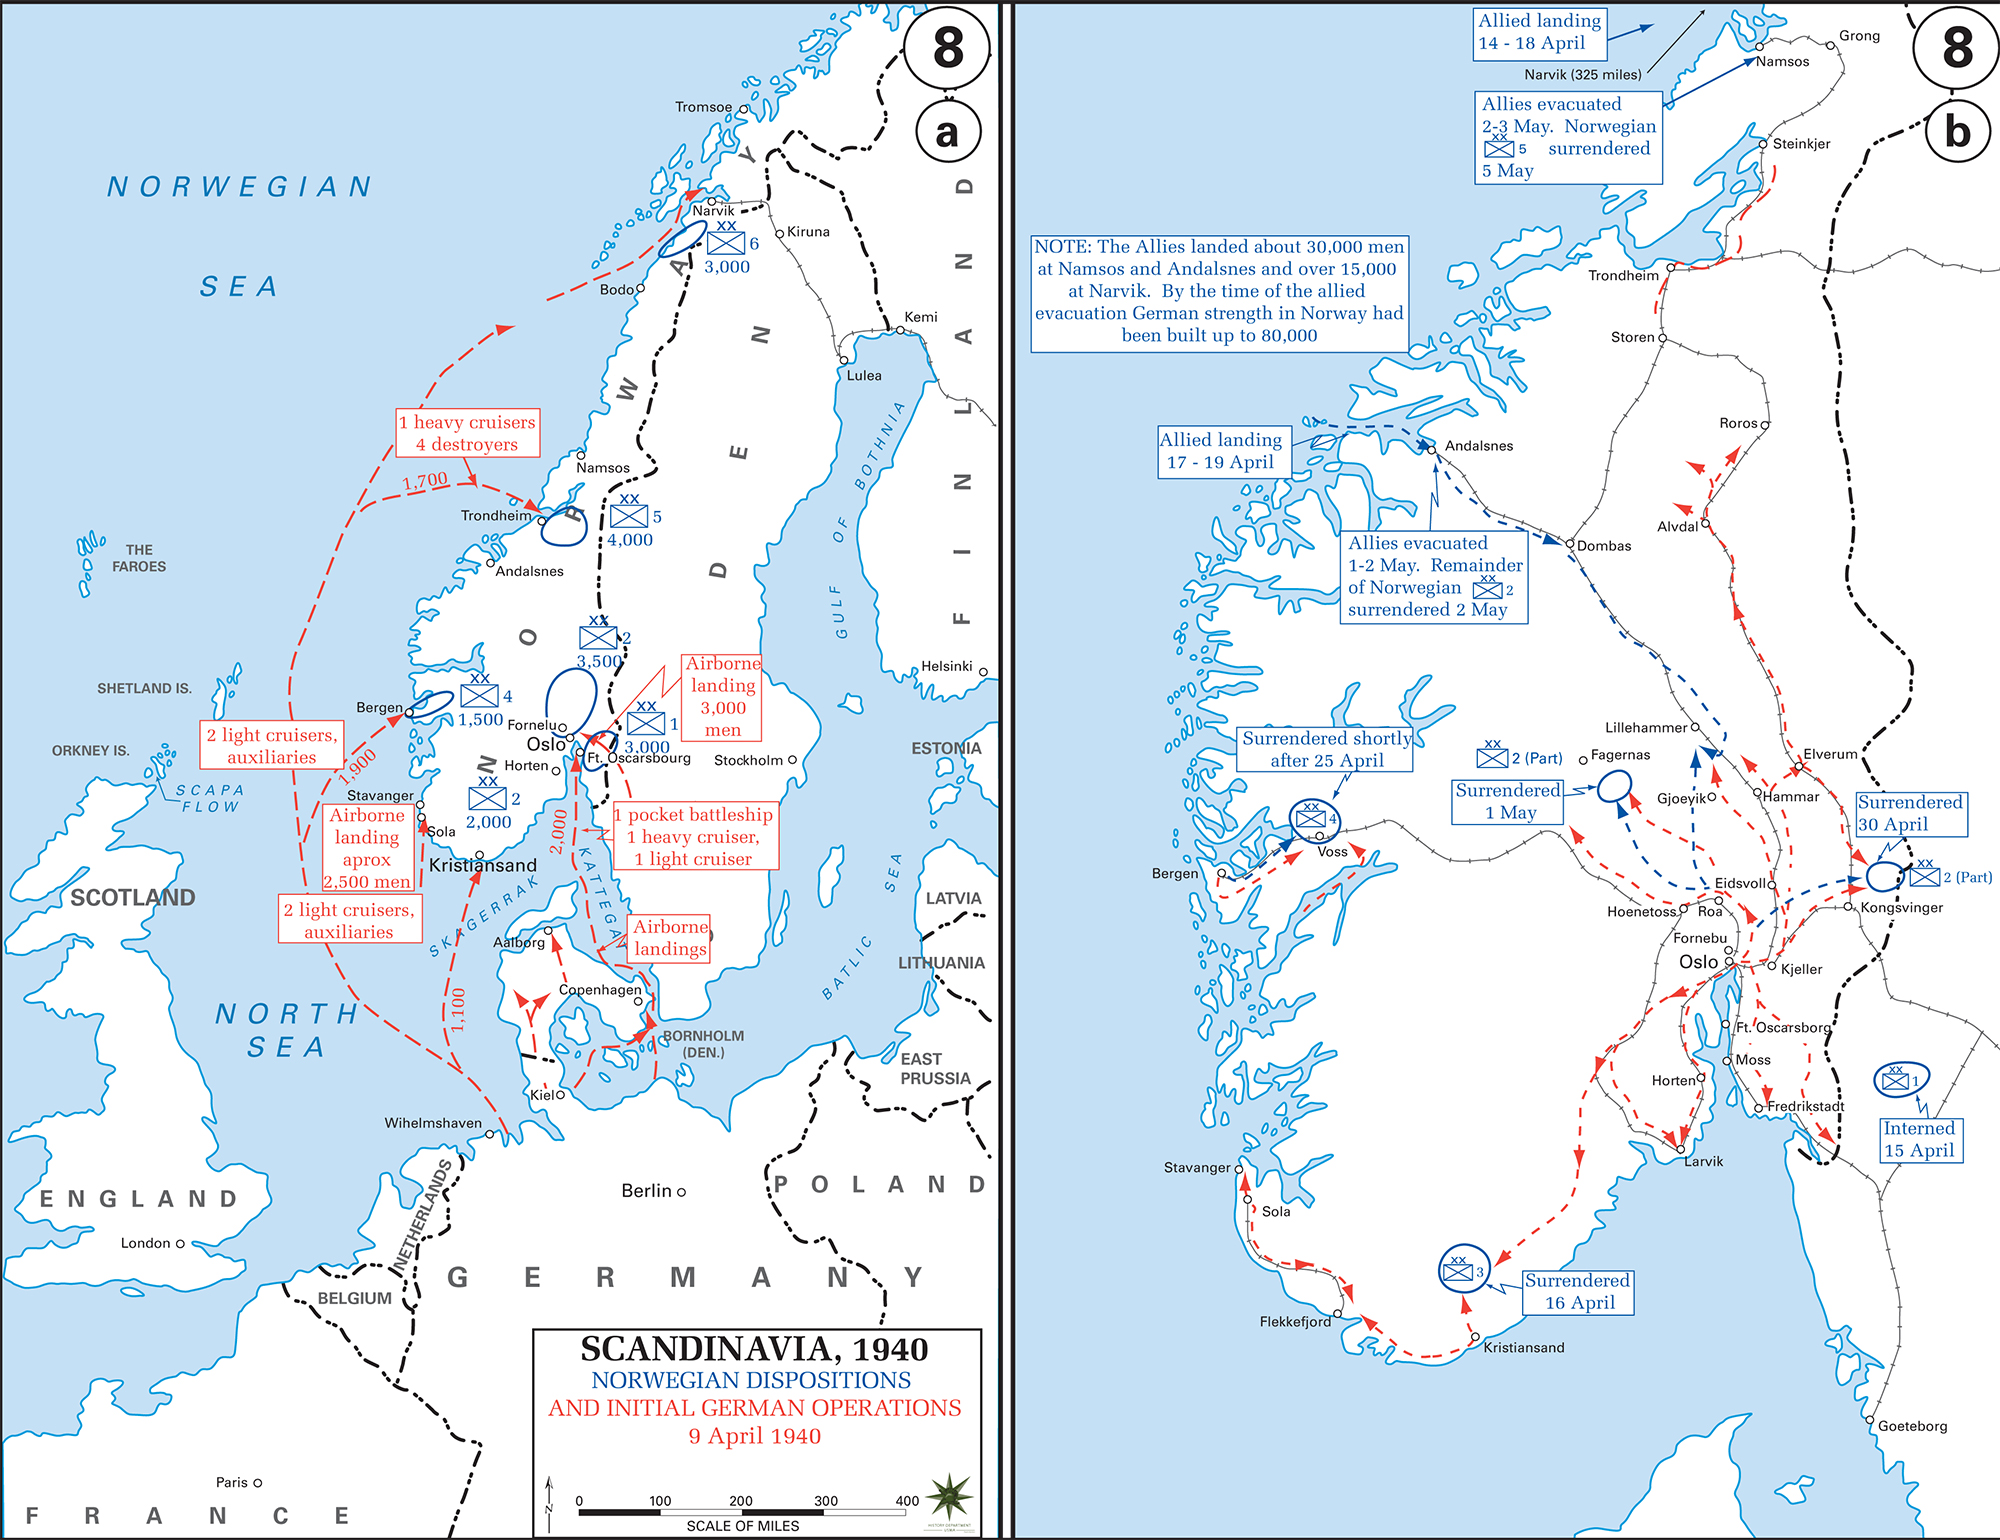 Map of WWII Scandinavia 1940